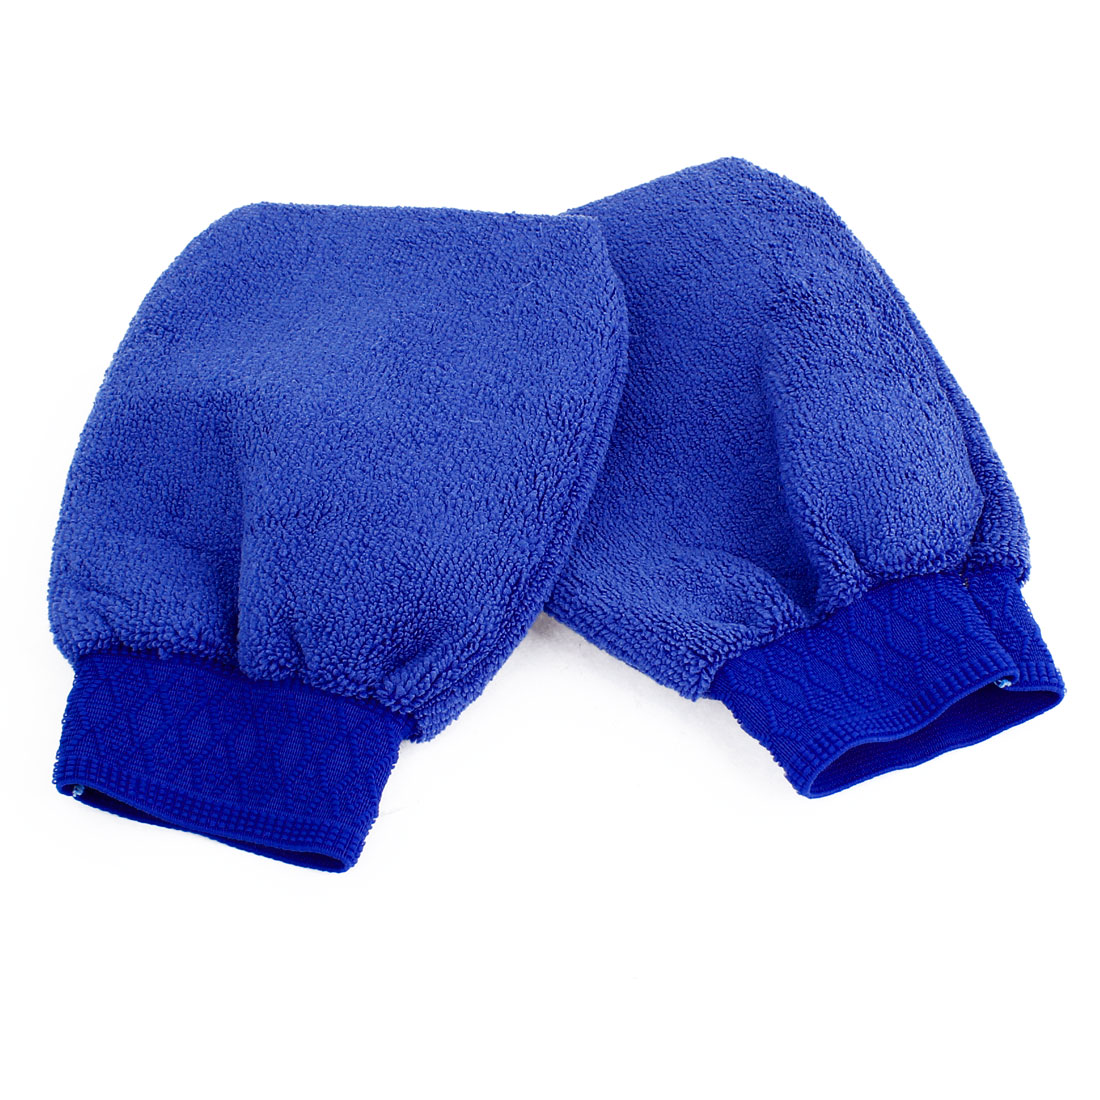 2 Pce Blue Cleaning Vehicle Glove Car Wash Mitten Brush